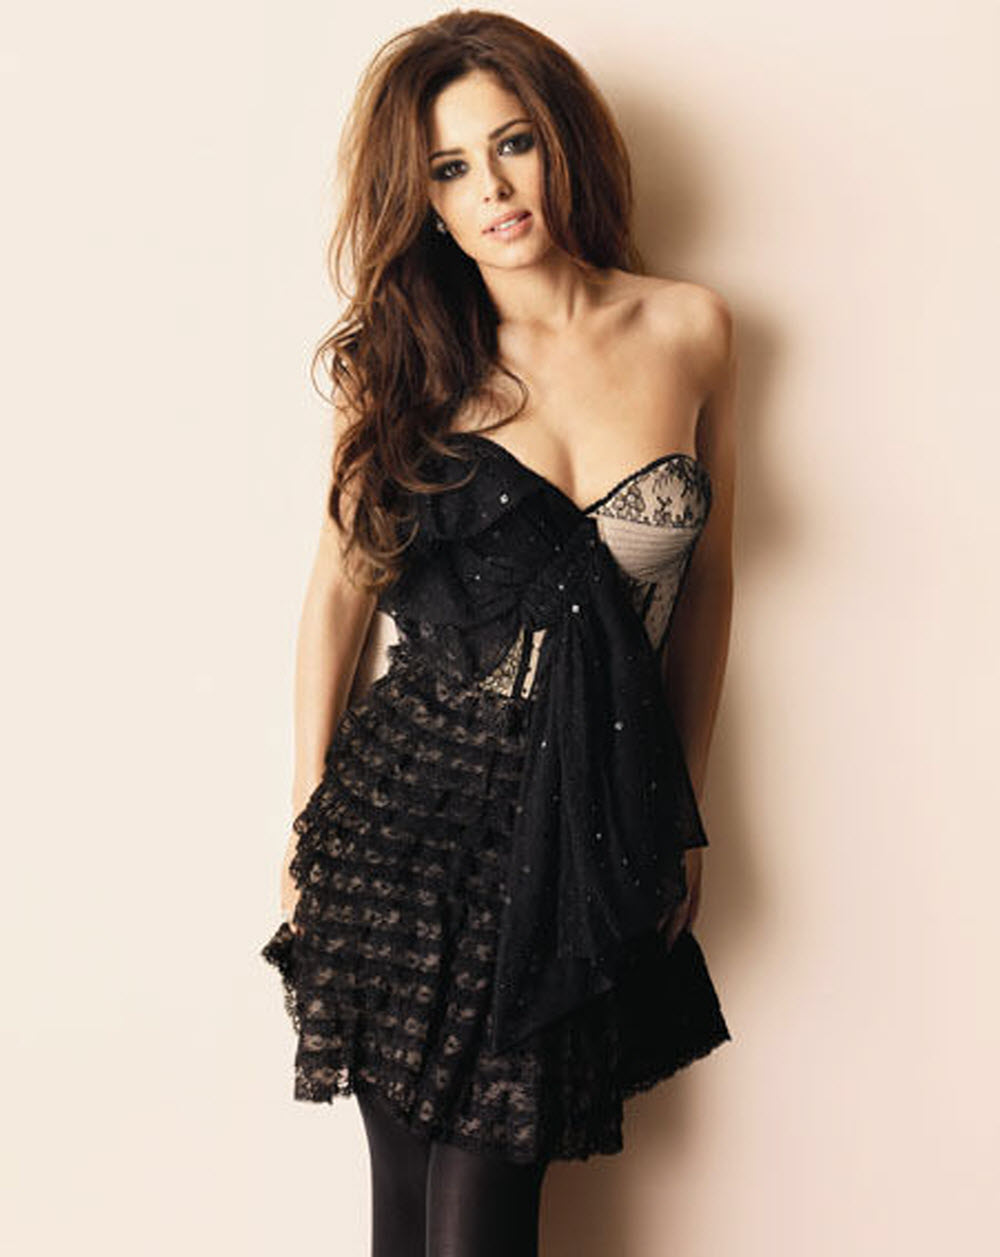 Cheryl Cole-Glamour photoshoot - SuperiorPics Celebrity Forums